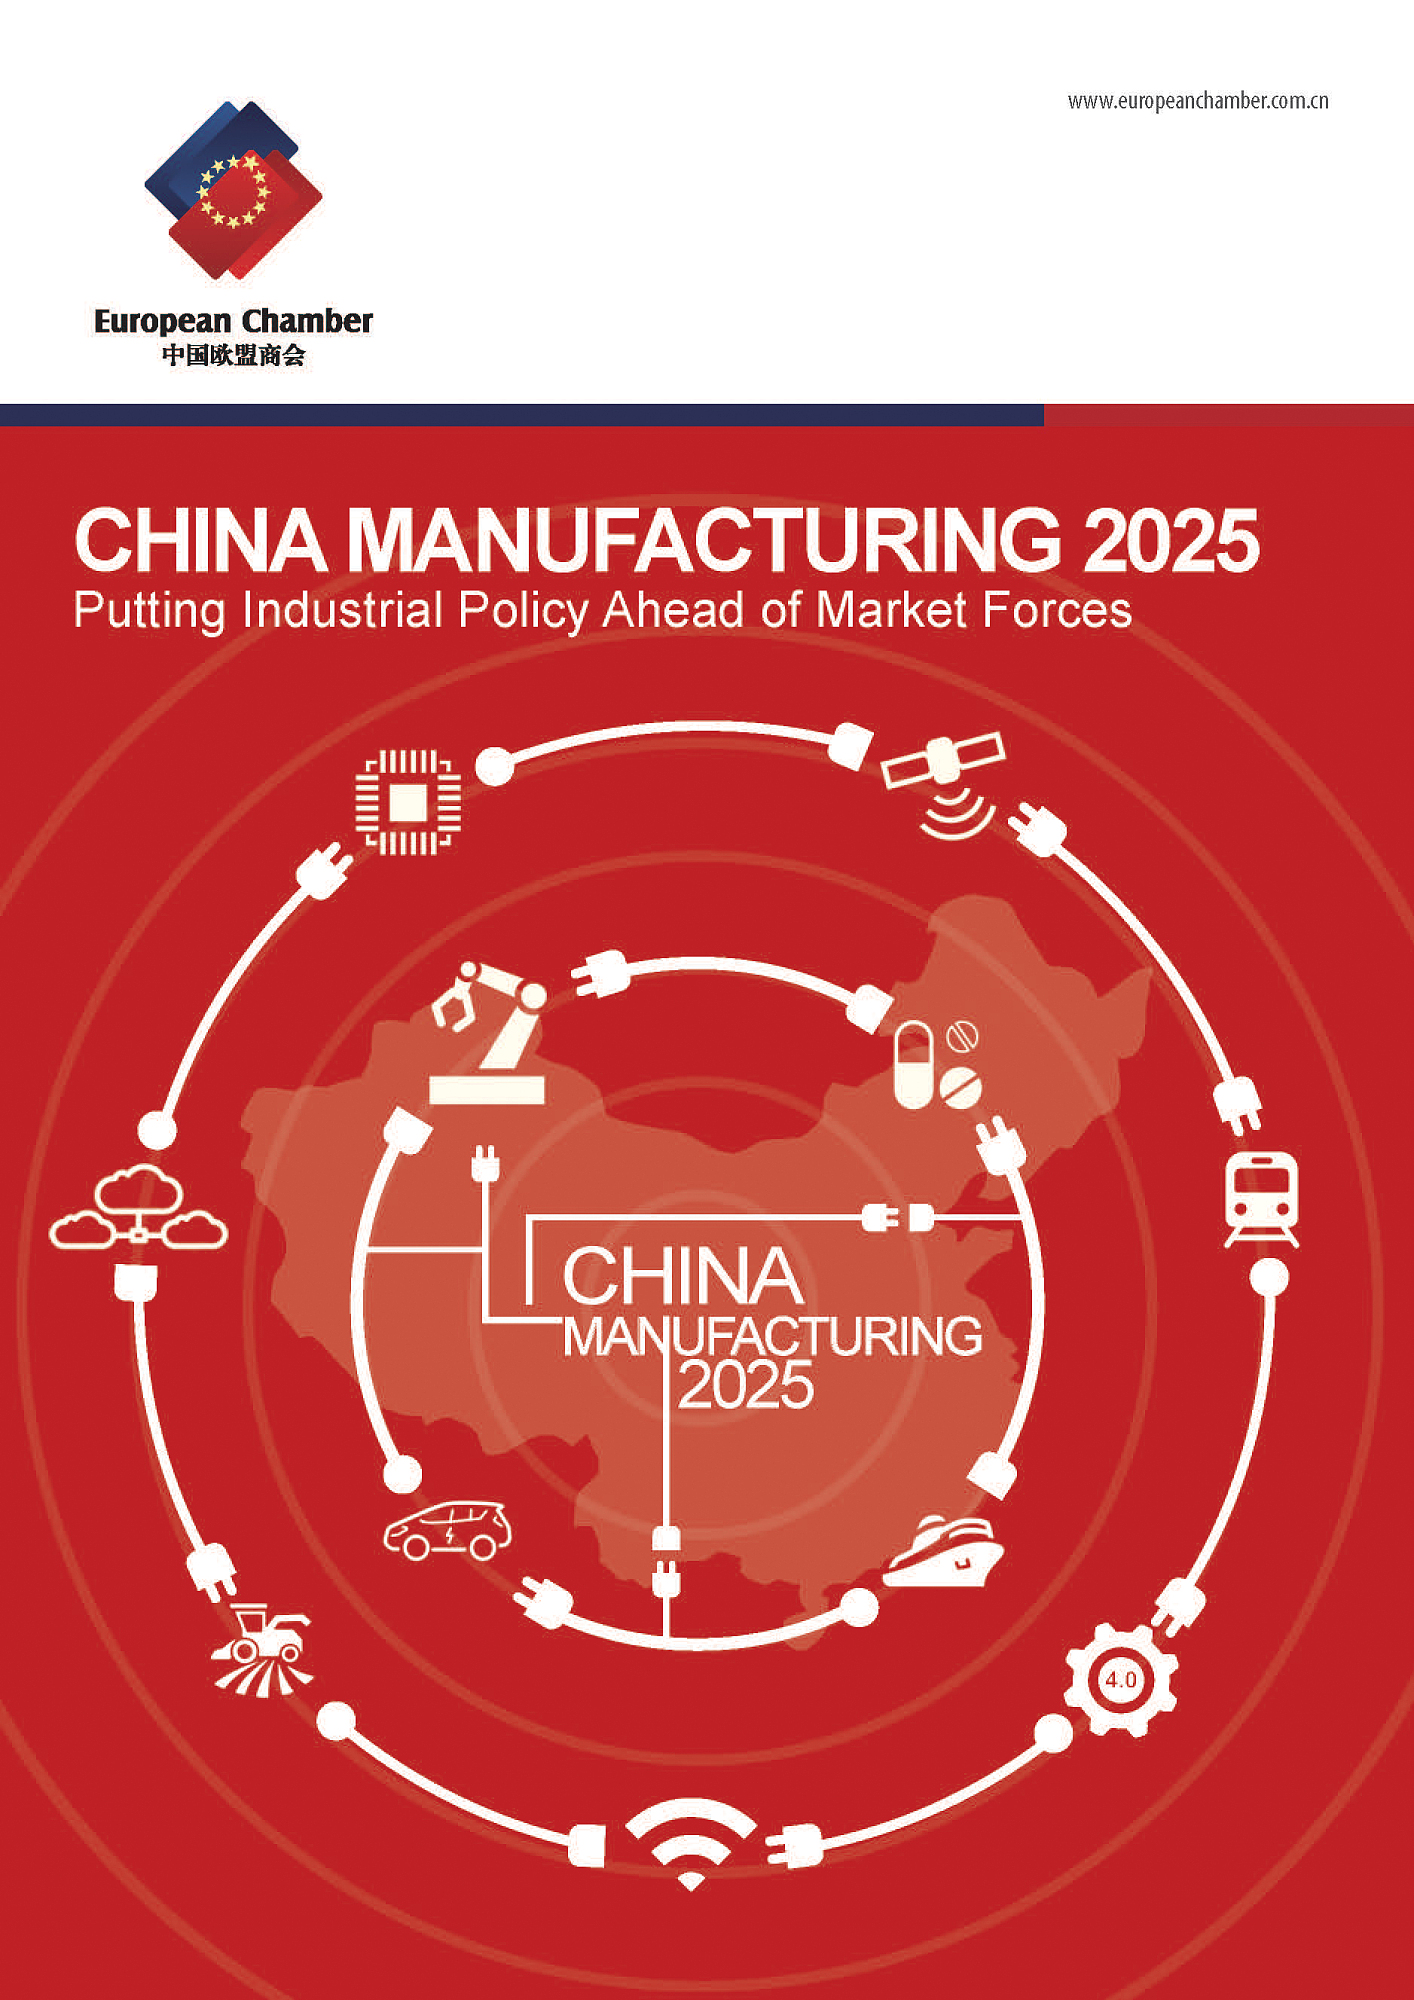 European Chamber Report Cautions Against the Negative Aspects of China Manufacturing 2025